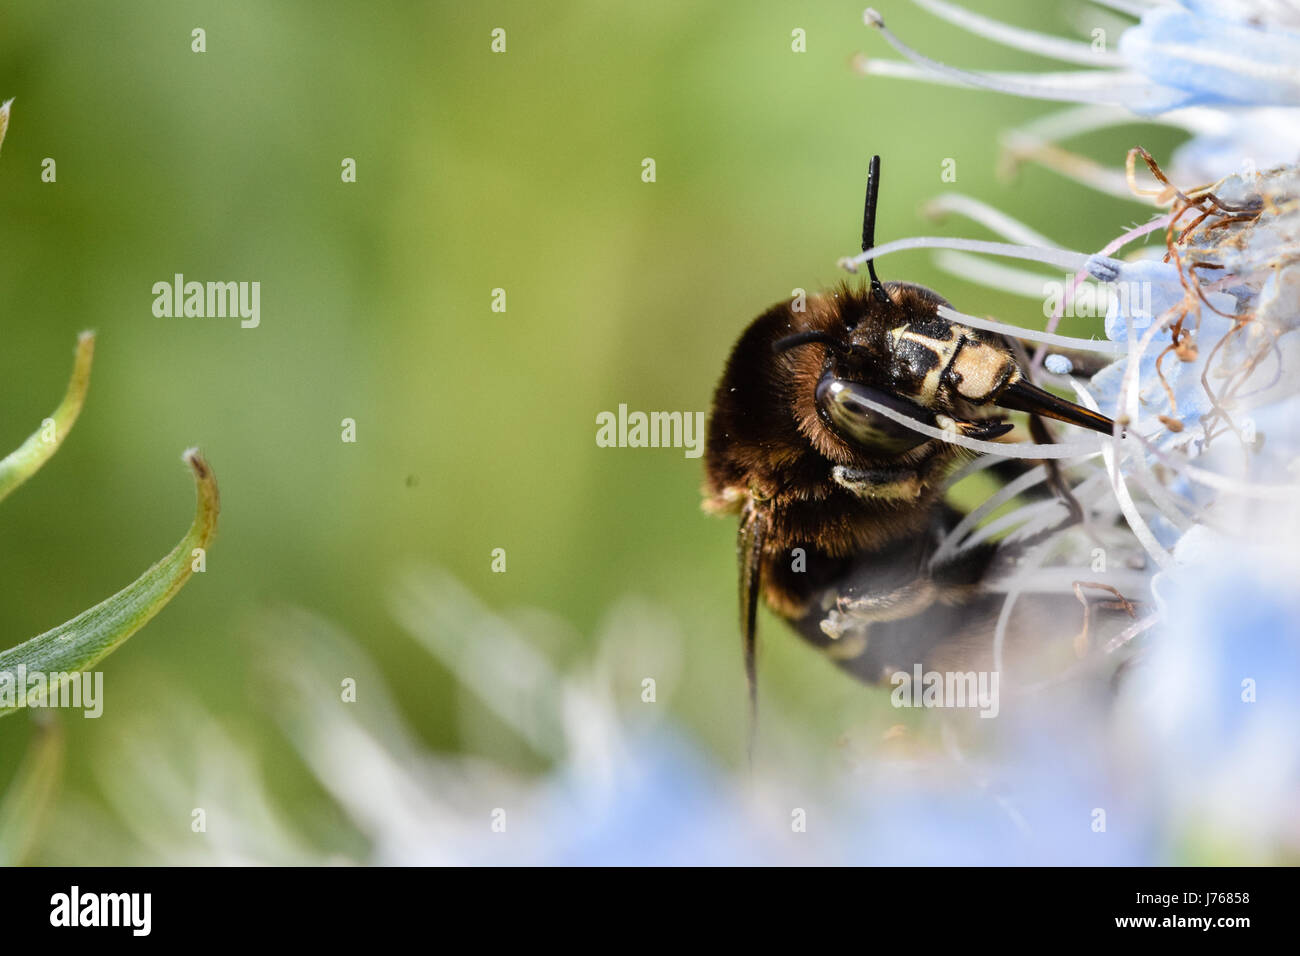 Banded bee collecting pollen from Echium flower, Porto Santo Island off Madeira - Stock Image